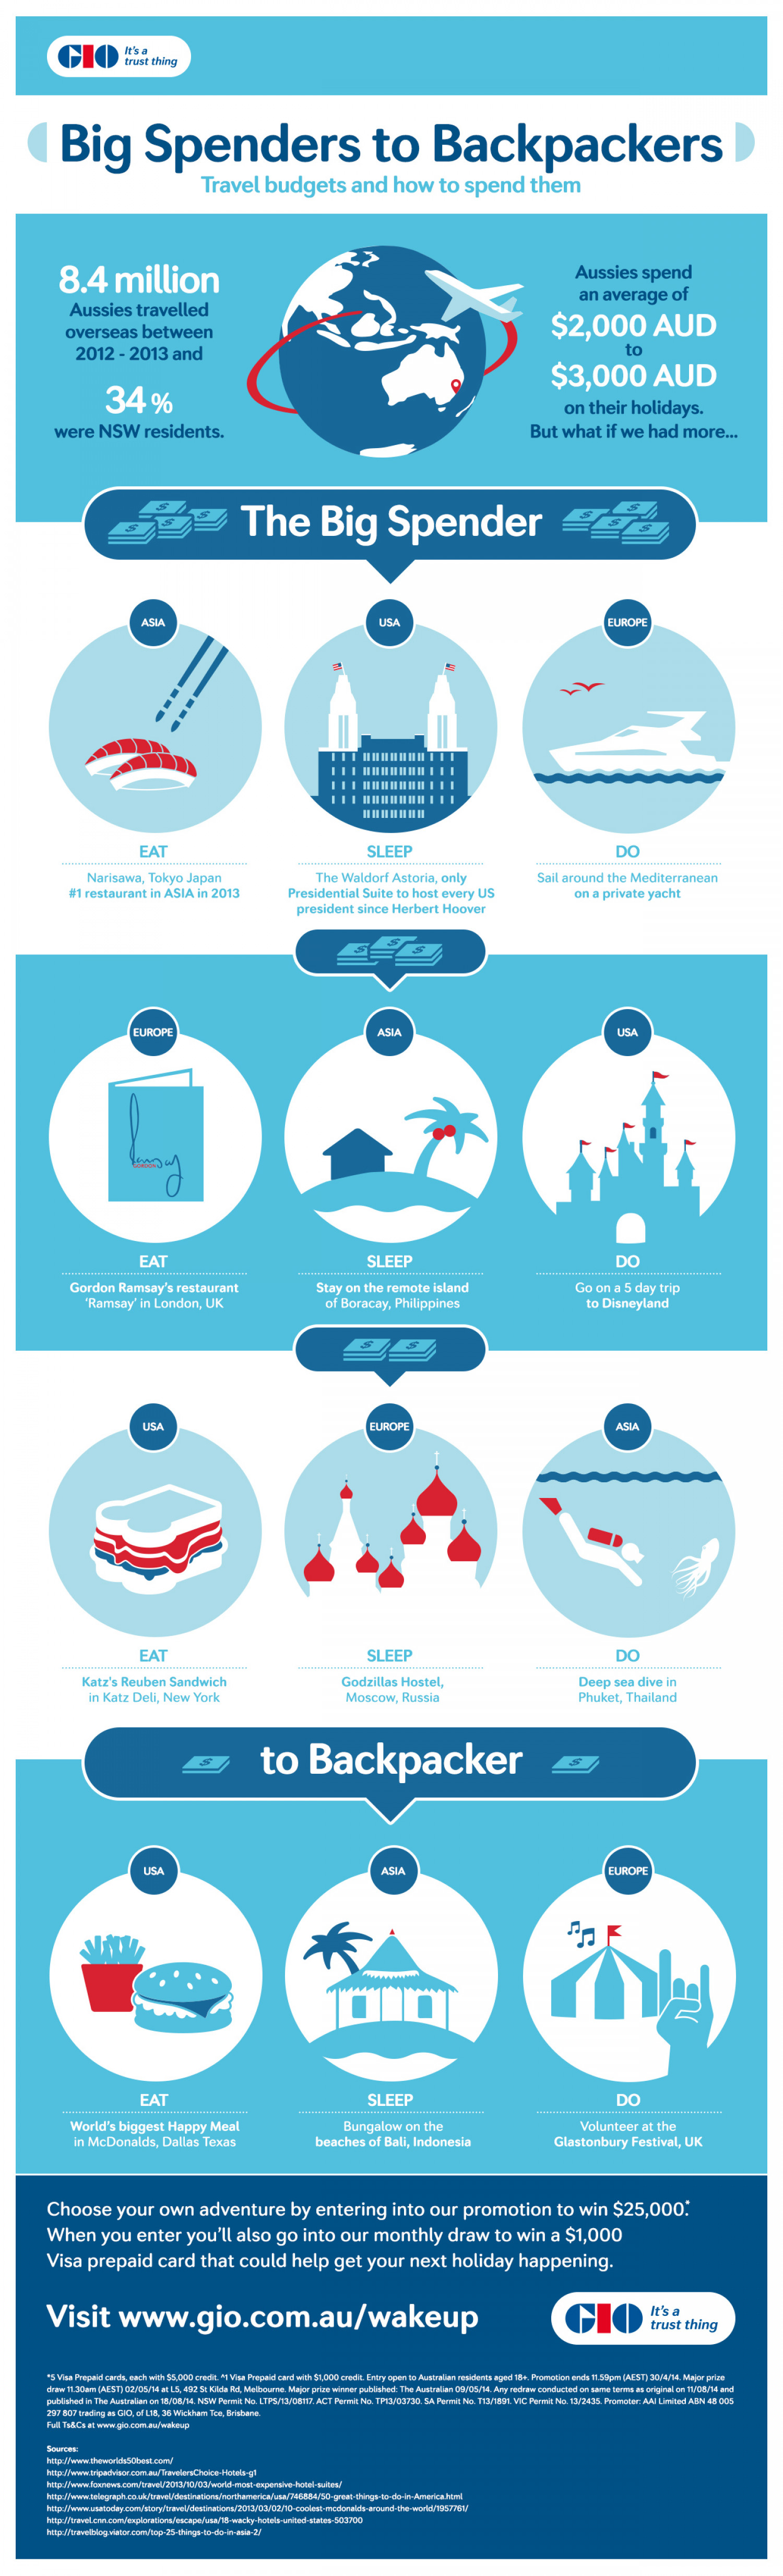 Big Spenders to Backpackers - Travel Budgets and How to Spend Them Infographic